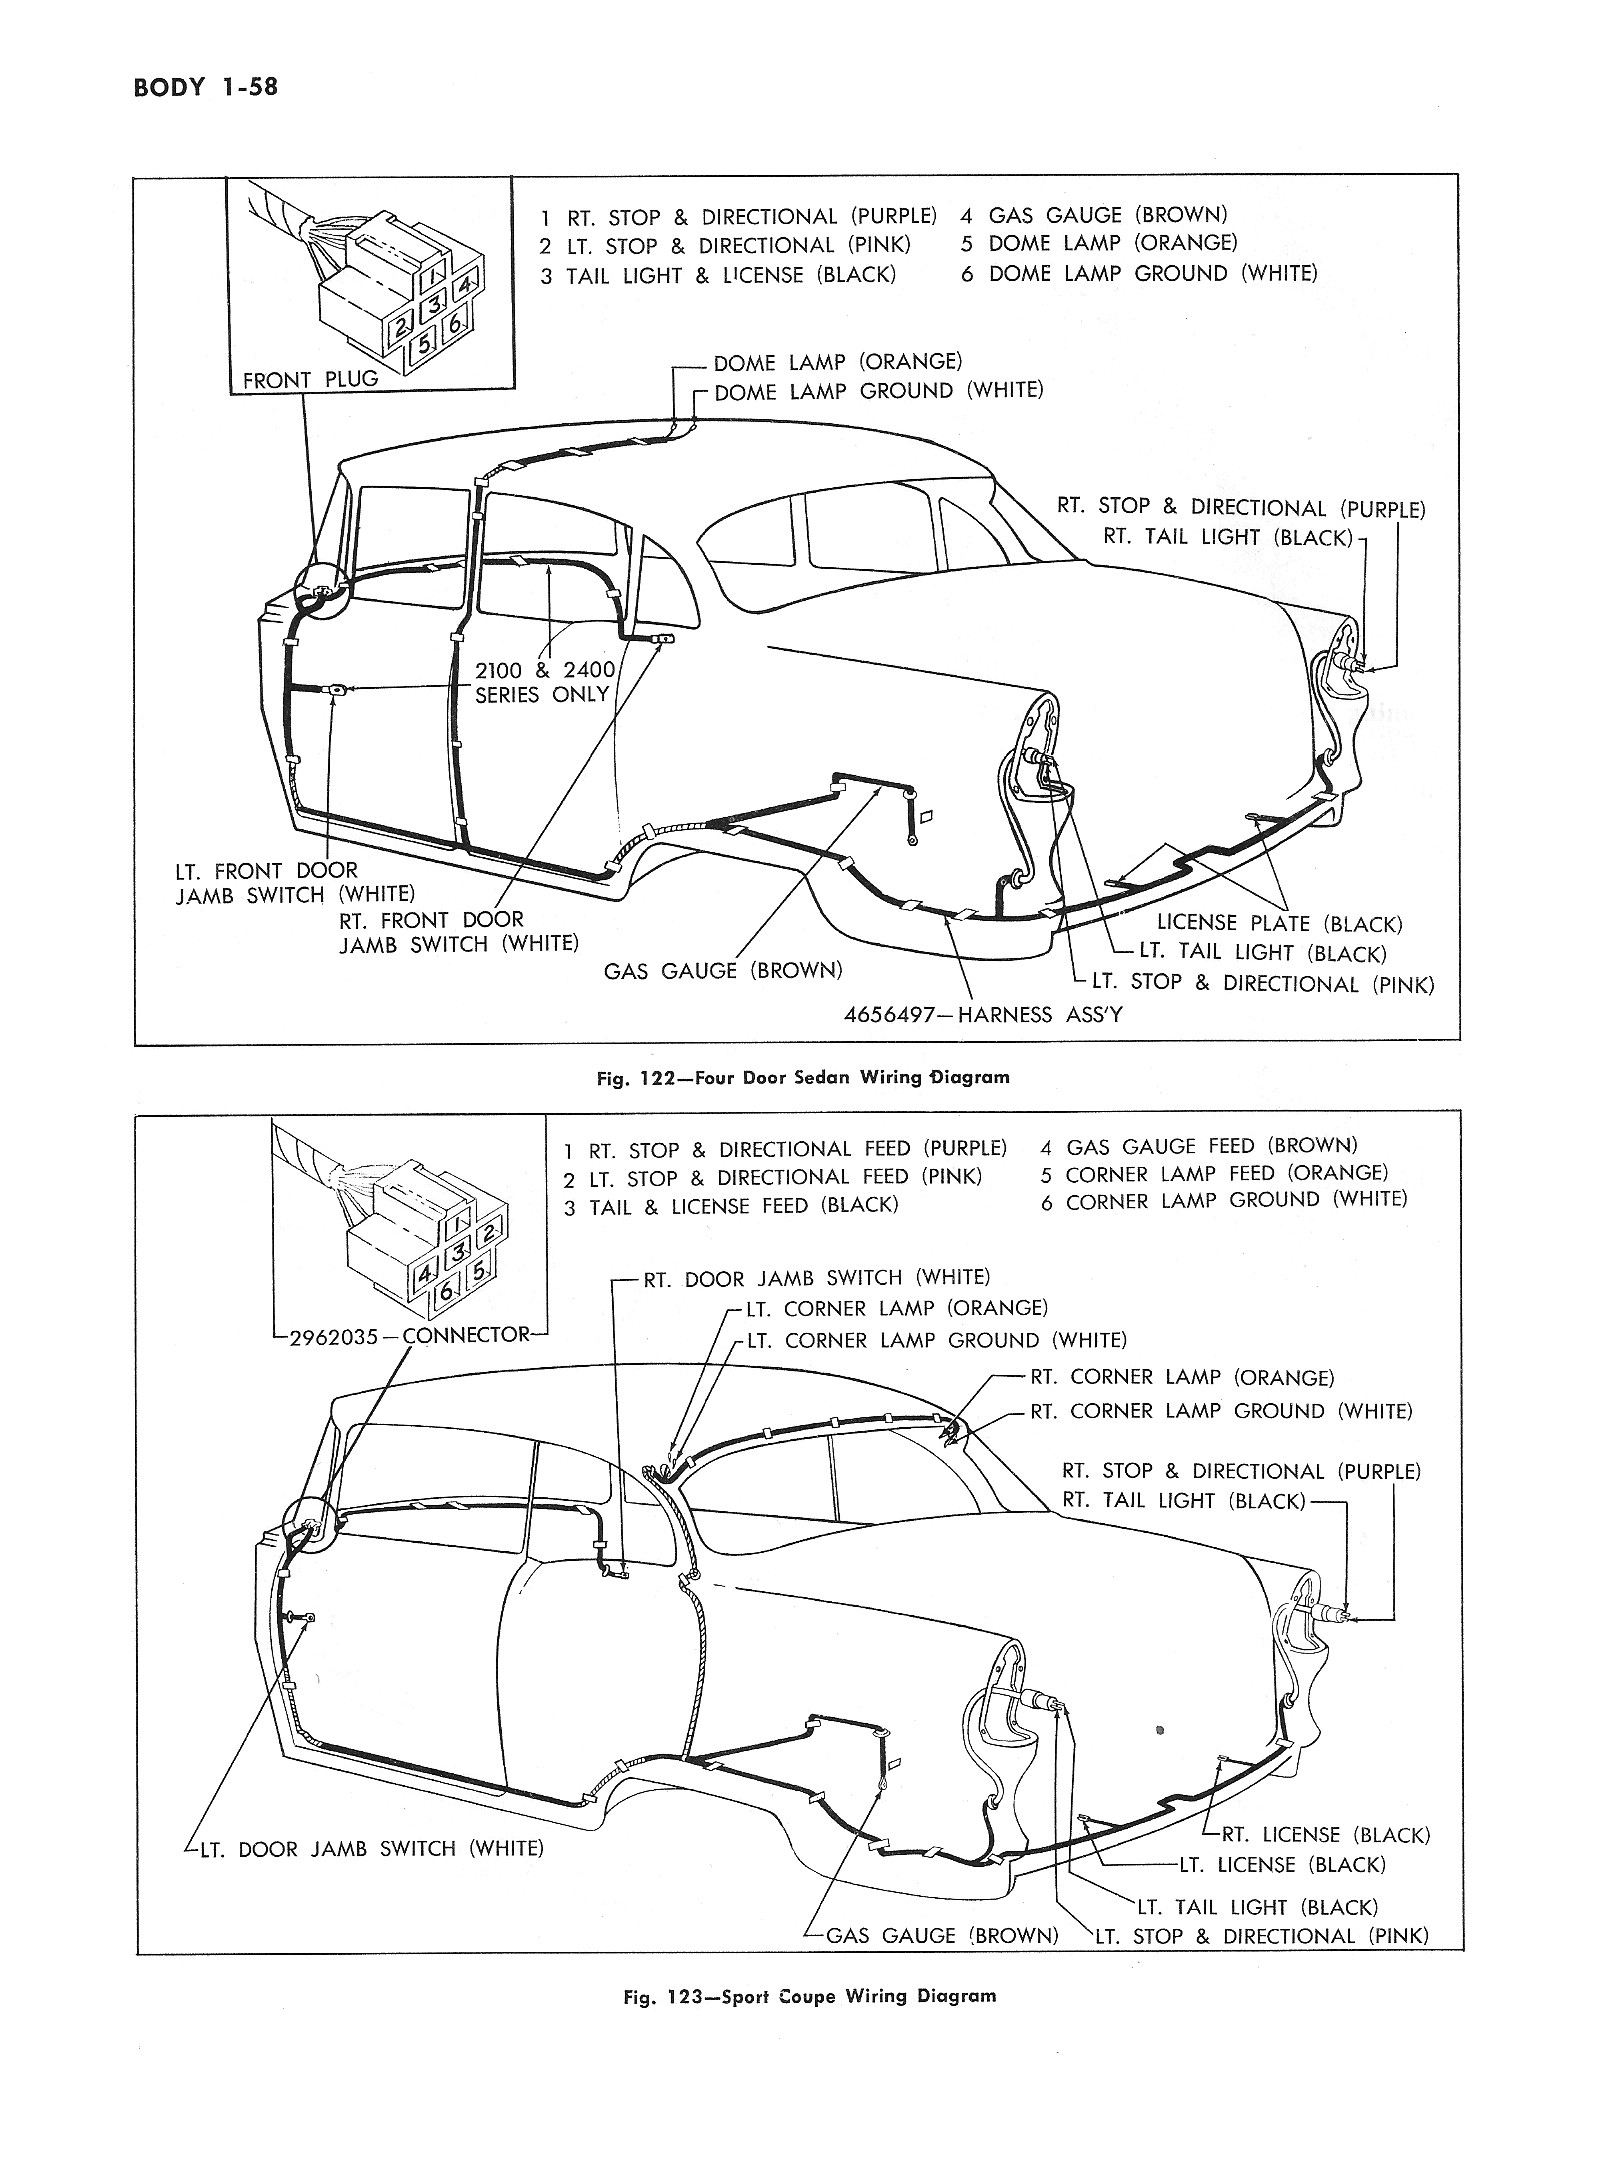 1955 car body wiring 2